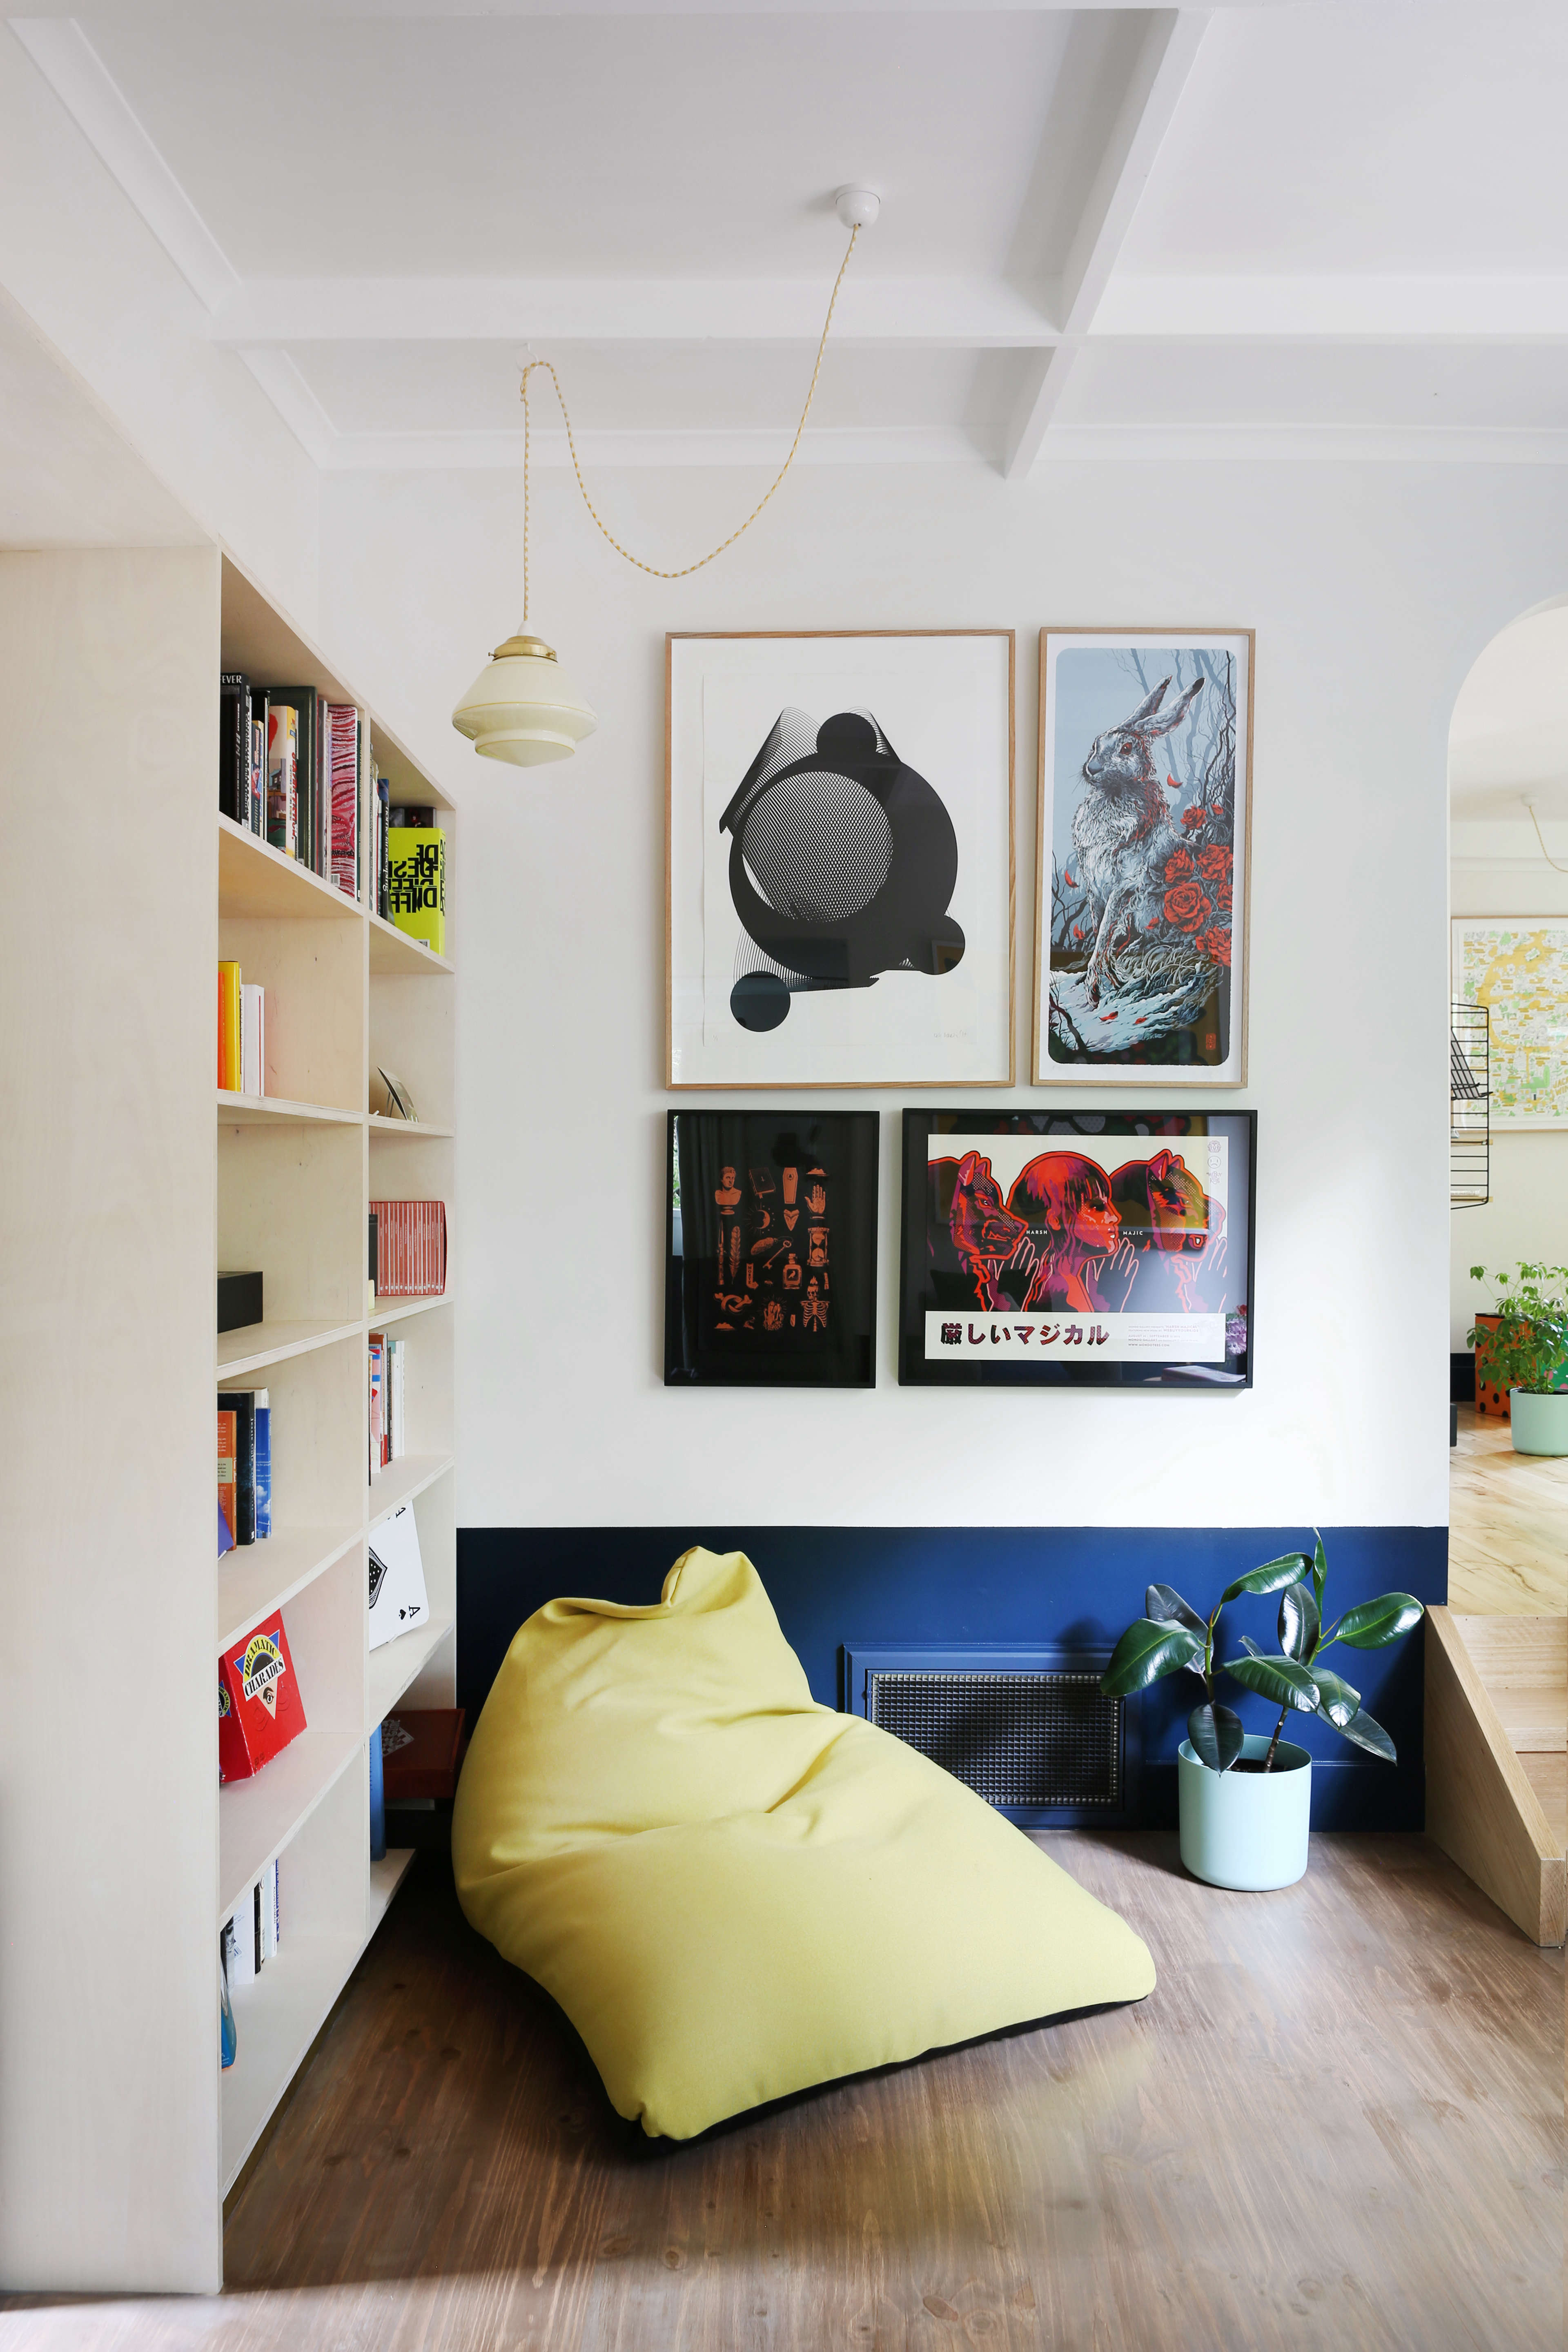 Guest library at Jackie Winter Gardens, a guesthouse and artist residency outside Melbourne, Australia, designed by Searah Trotter of Hearth; Rhiannon Taylor photo| Remodelista